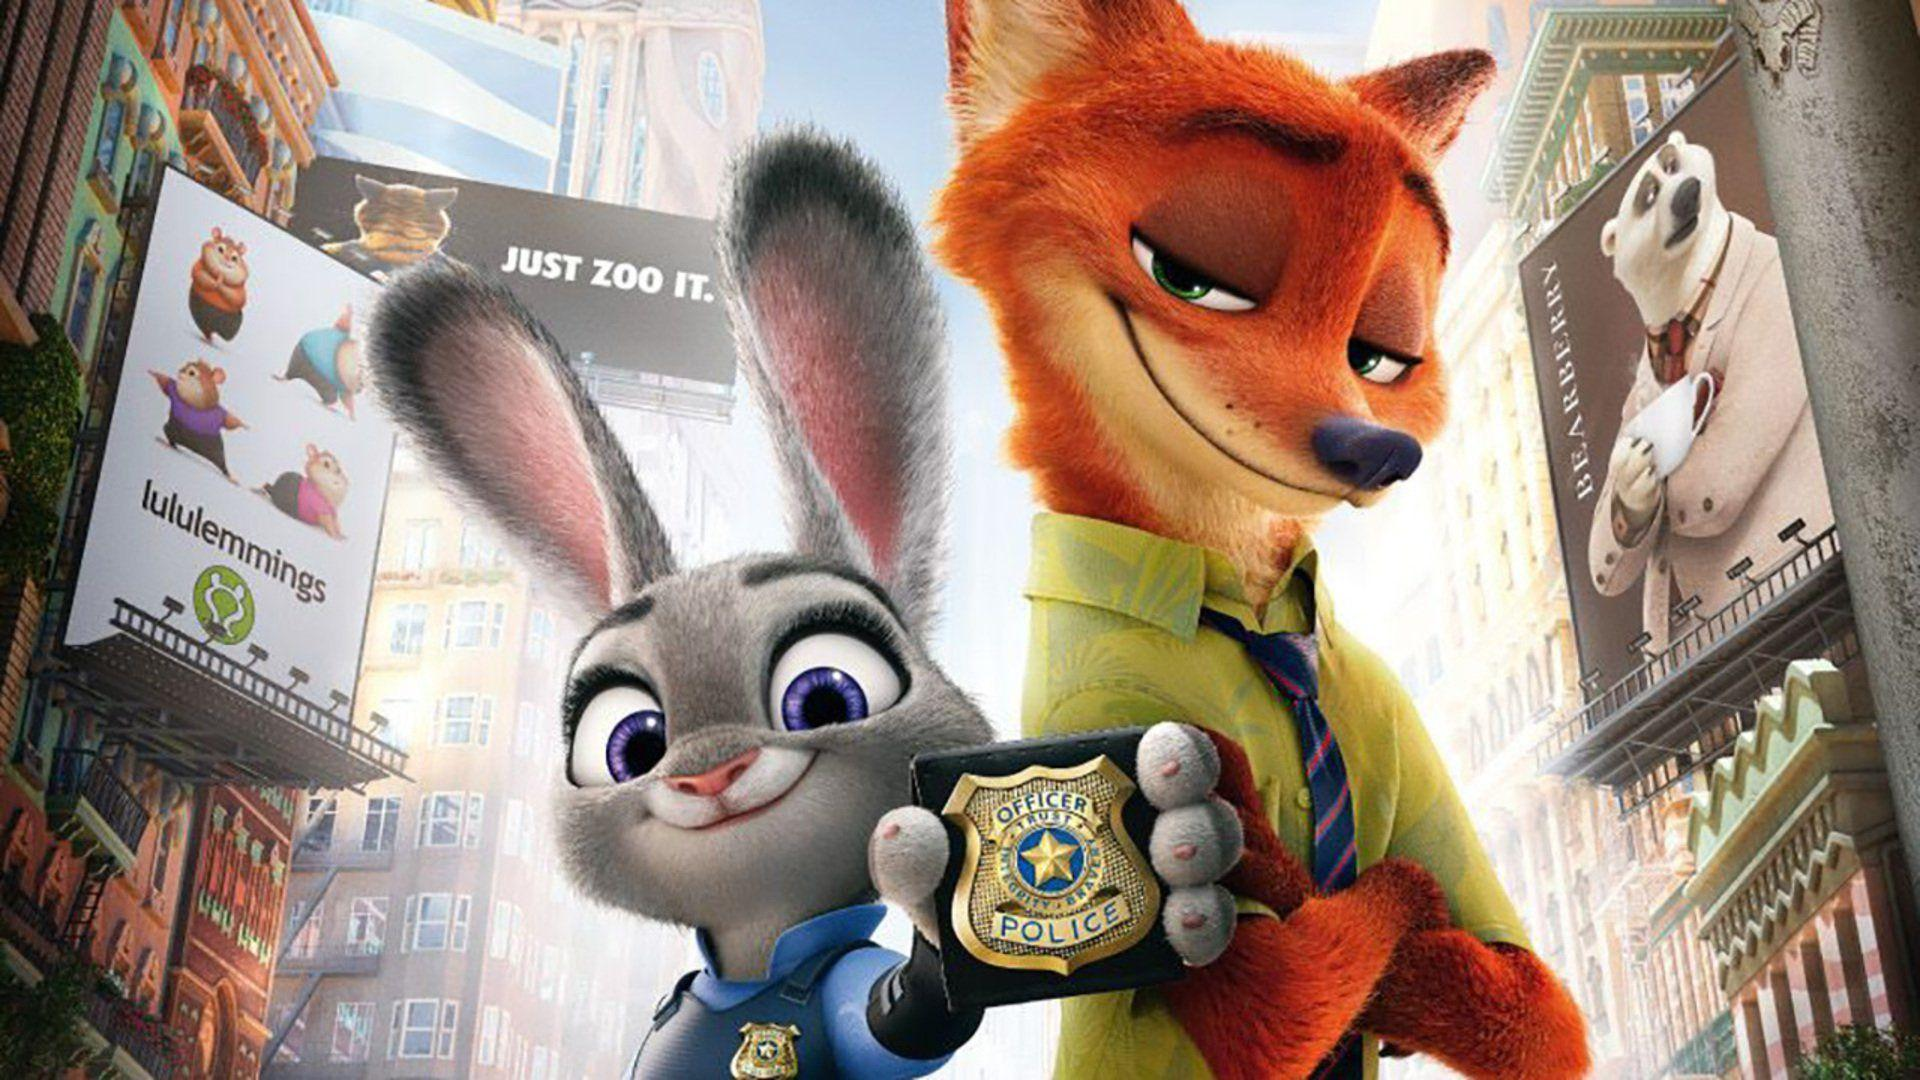 Zootopia 2 Trailer, Release Date, Cast, Plot Two Zootopia Sequels are in works at Disney